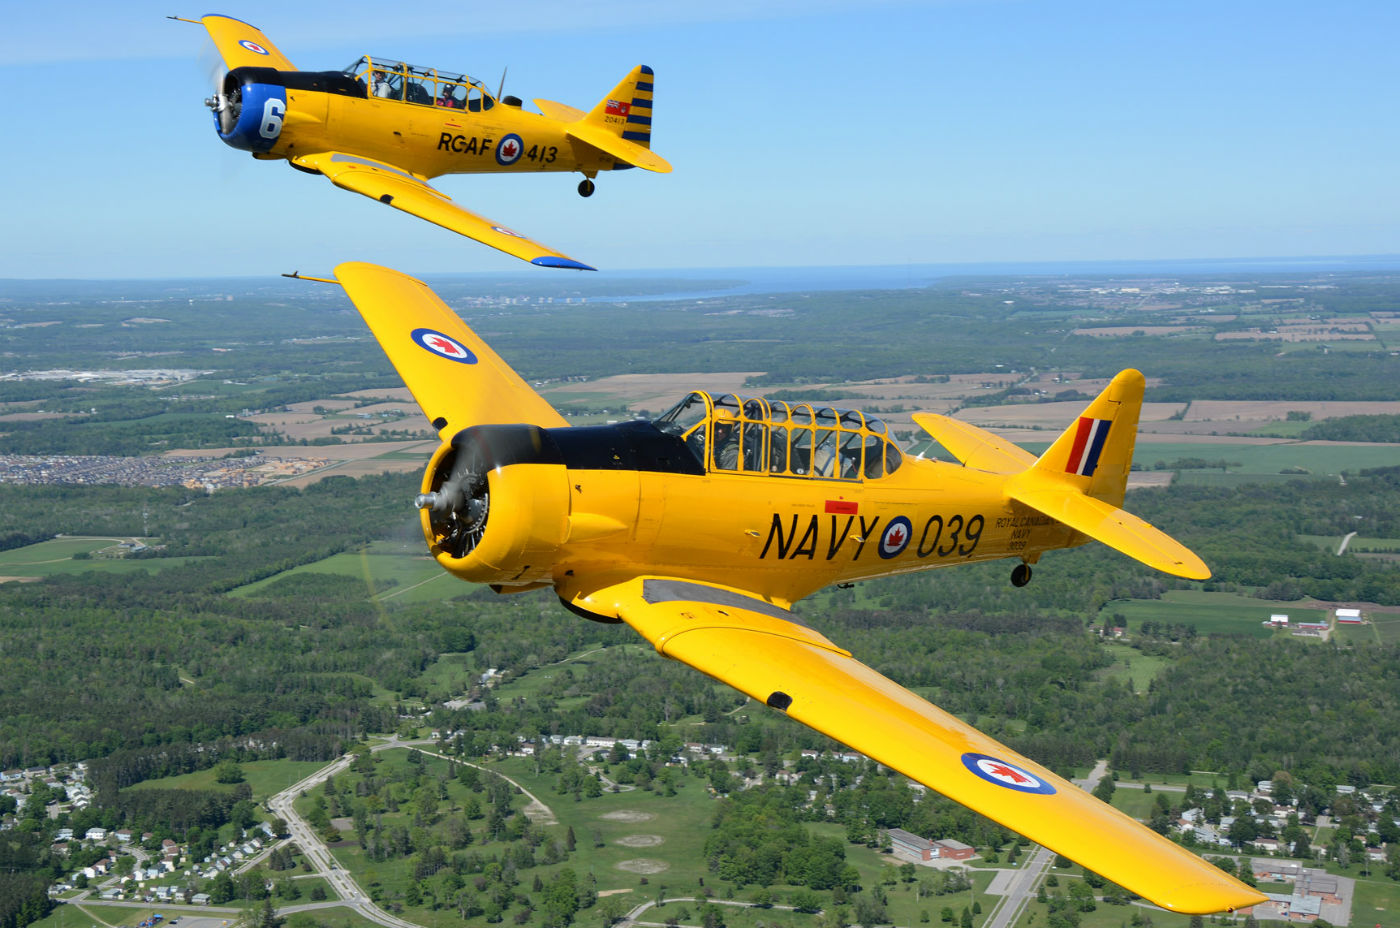 Glenn Goldman and Tom Siimes fly an MkII and Mk.4 Harvard over Base Borden.